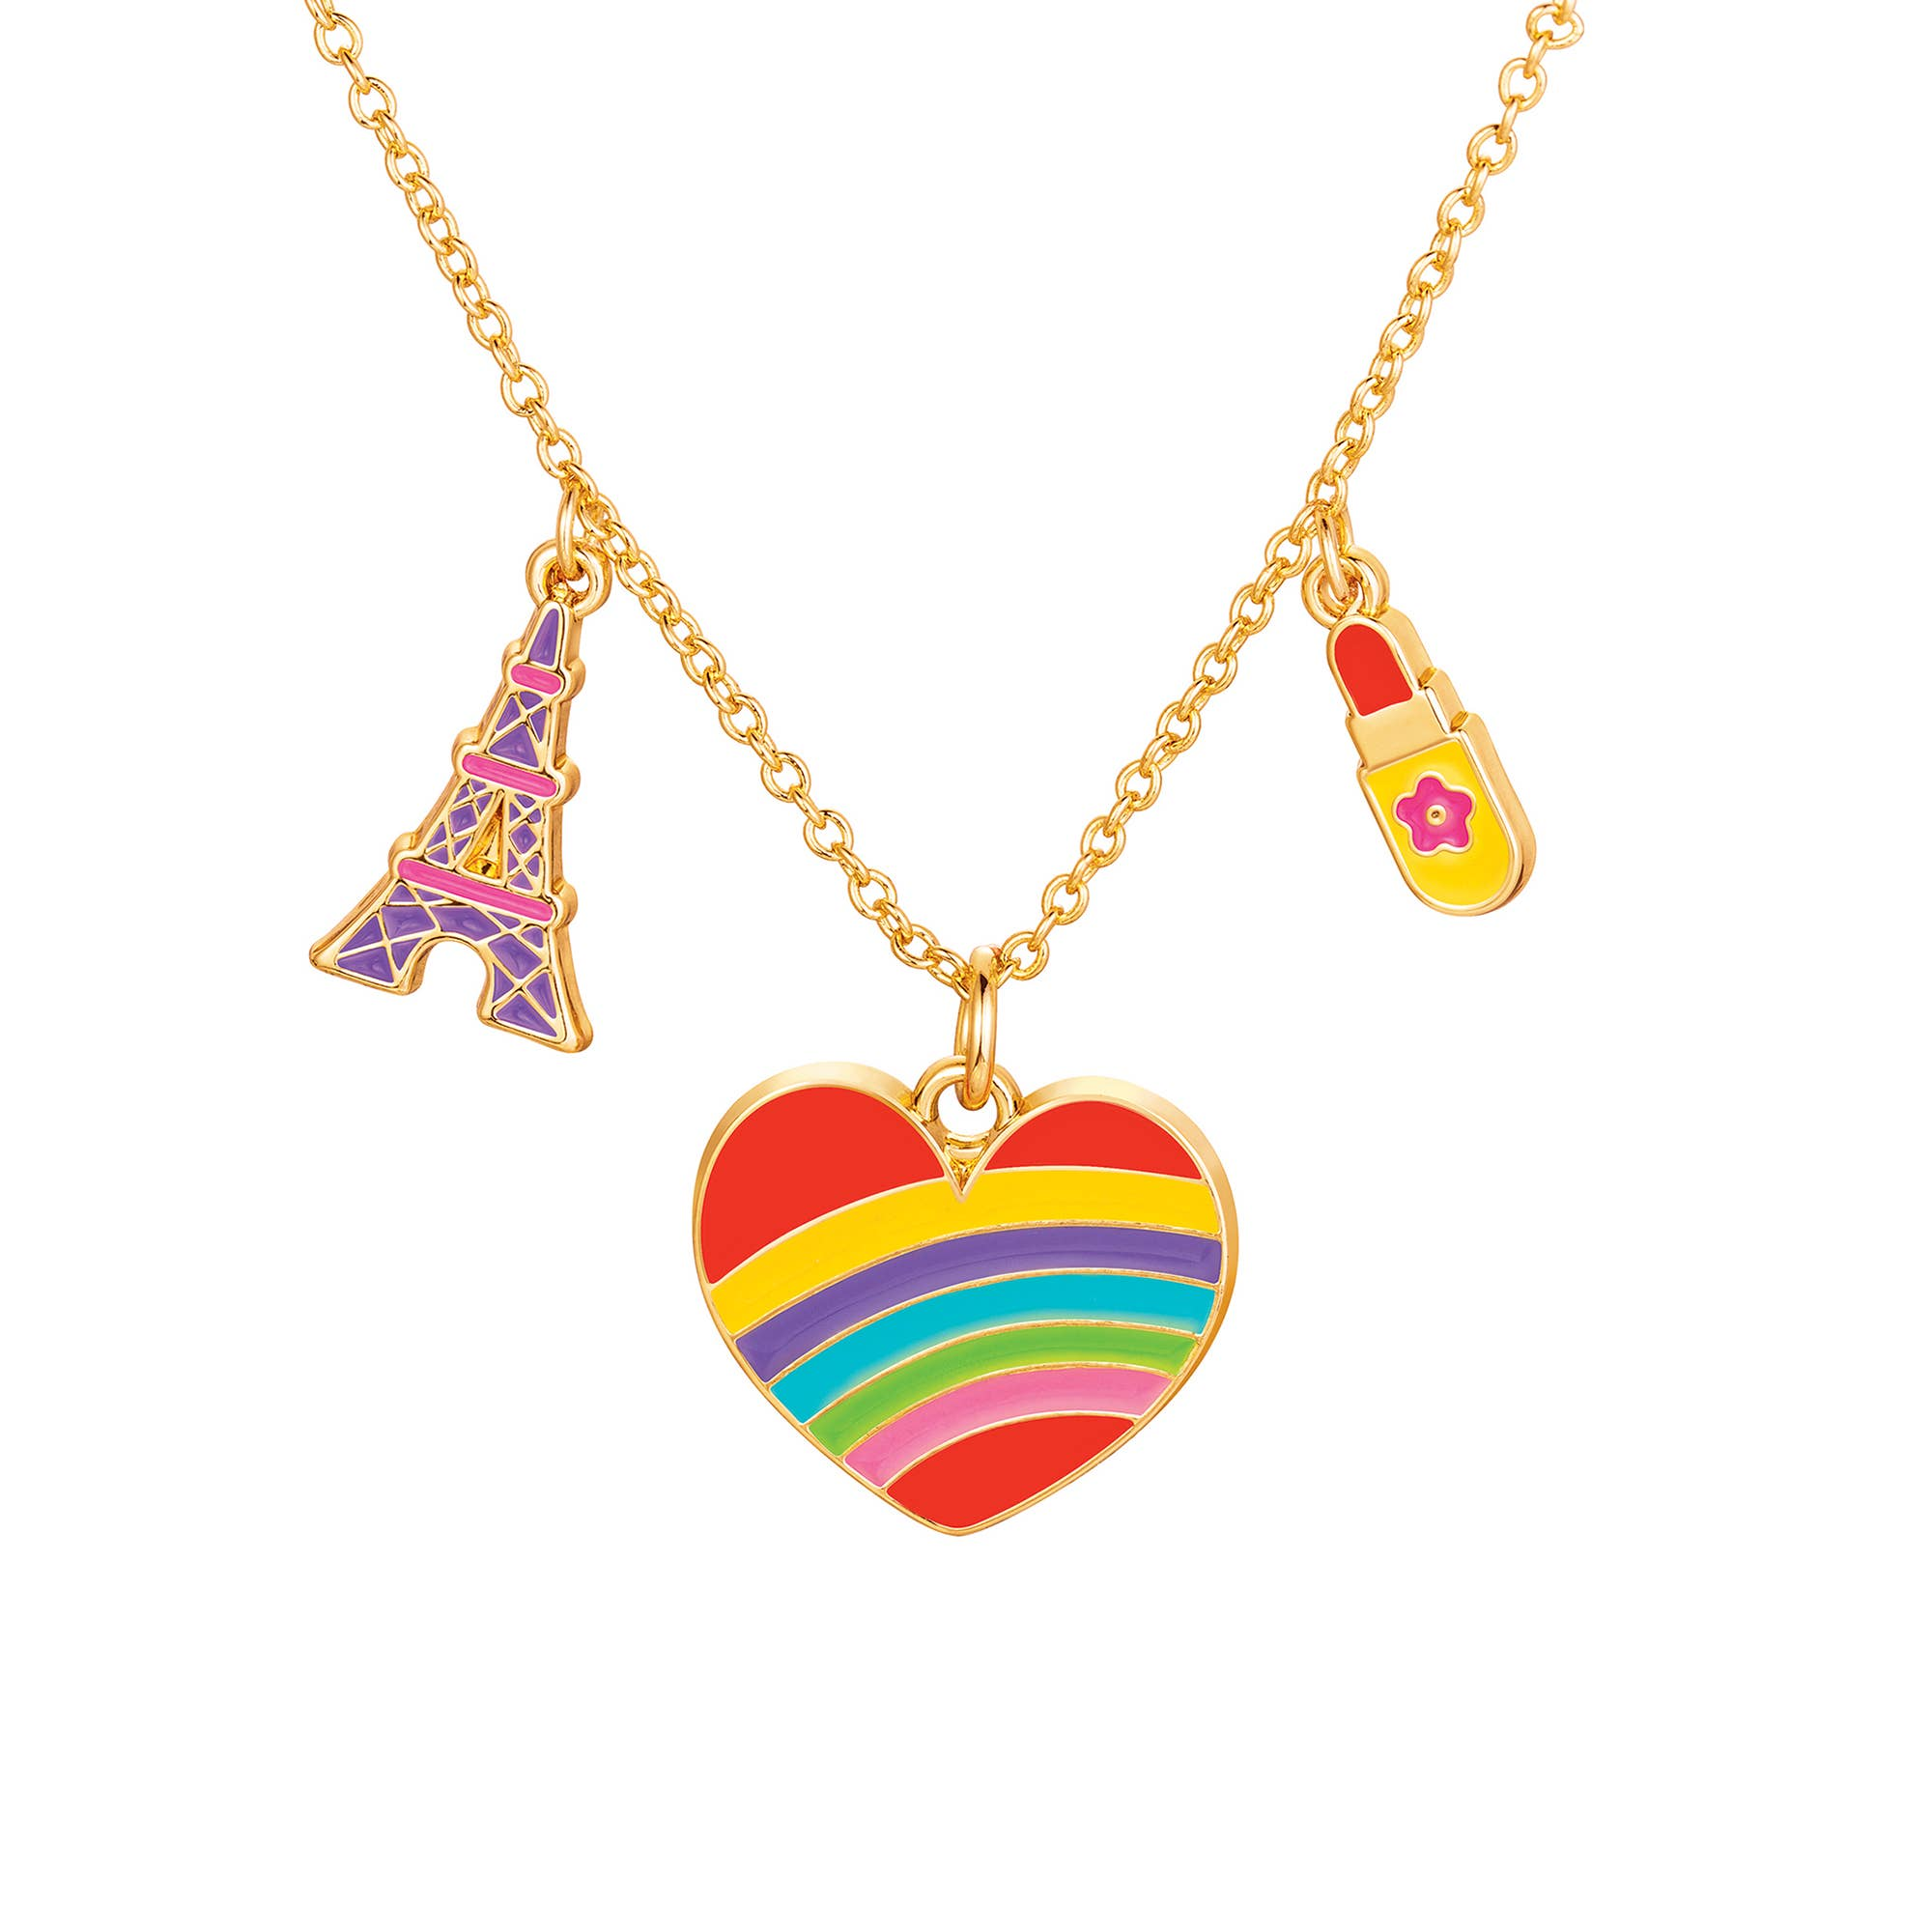 Charming Whimsy Necklace- Paris Heart | Trada Marketplace